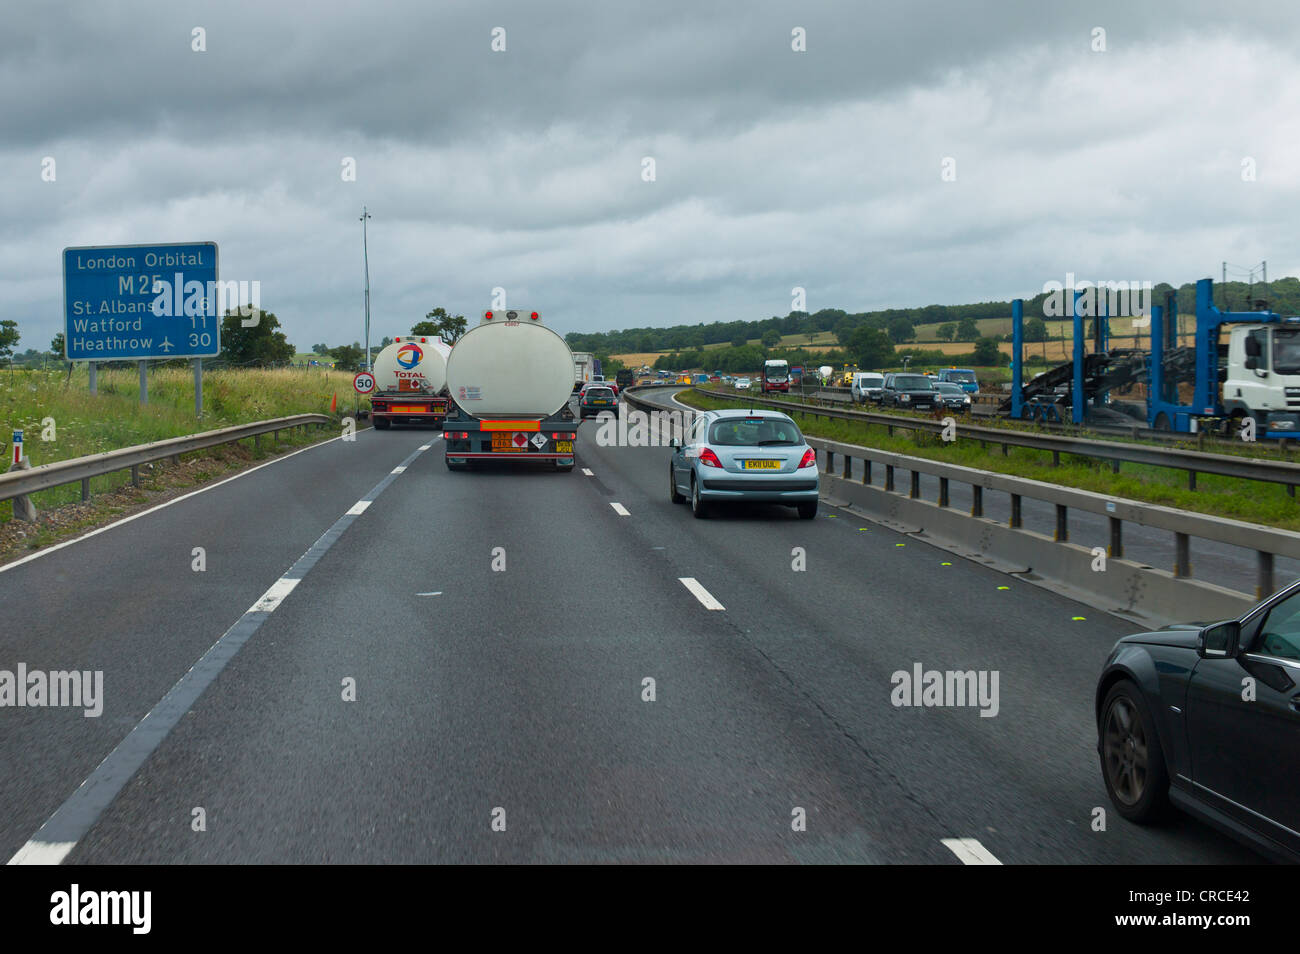 A busy section of the M25, London Orbital Motorway, with a lane closed and the hard shoulder in use. - Stock Image